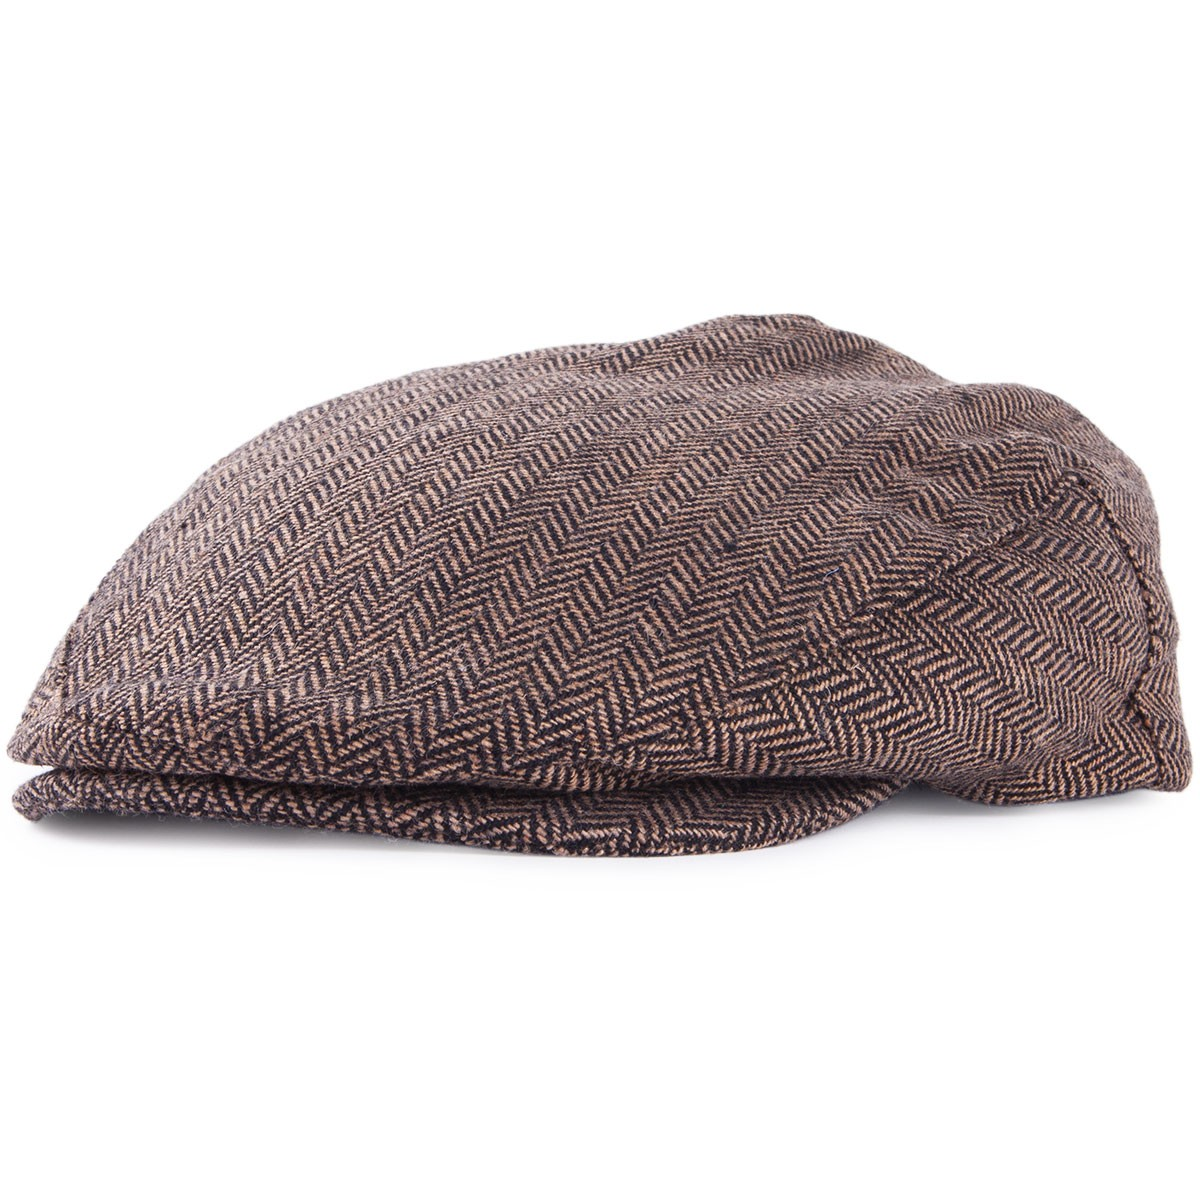 Brixton Hooligan Snap Cap Hat - Brown   Khaki e877b6f63de8